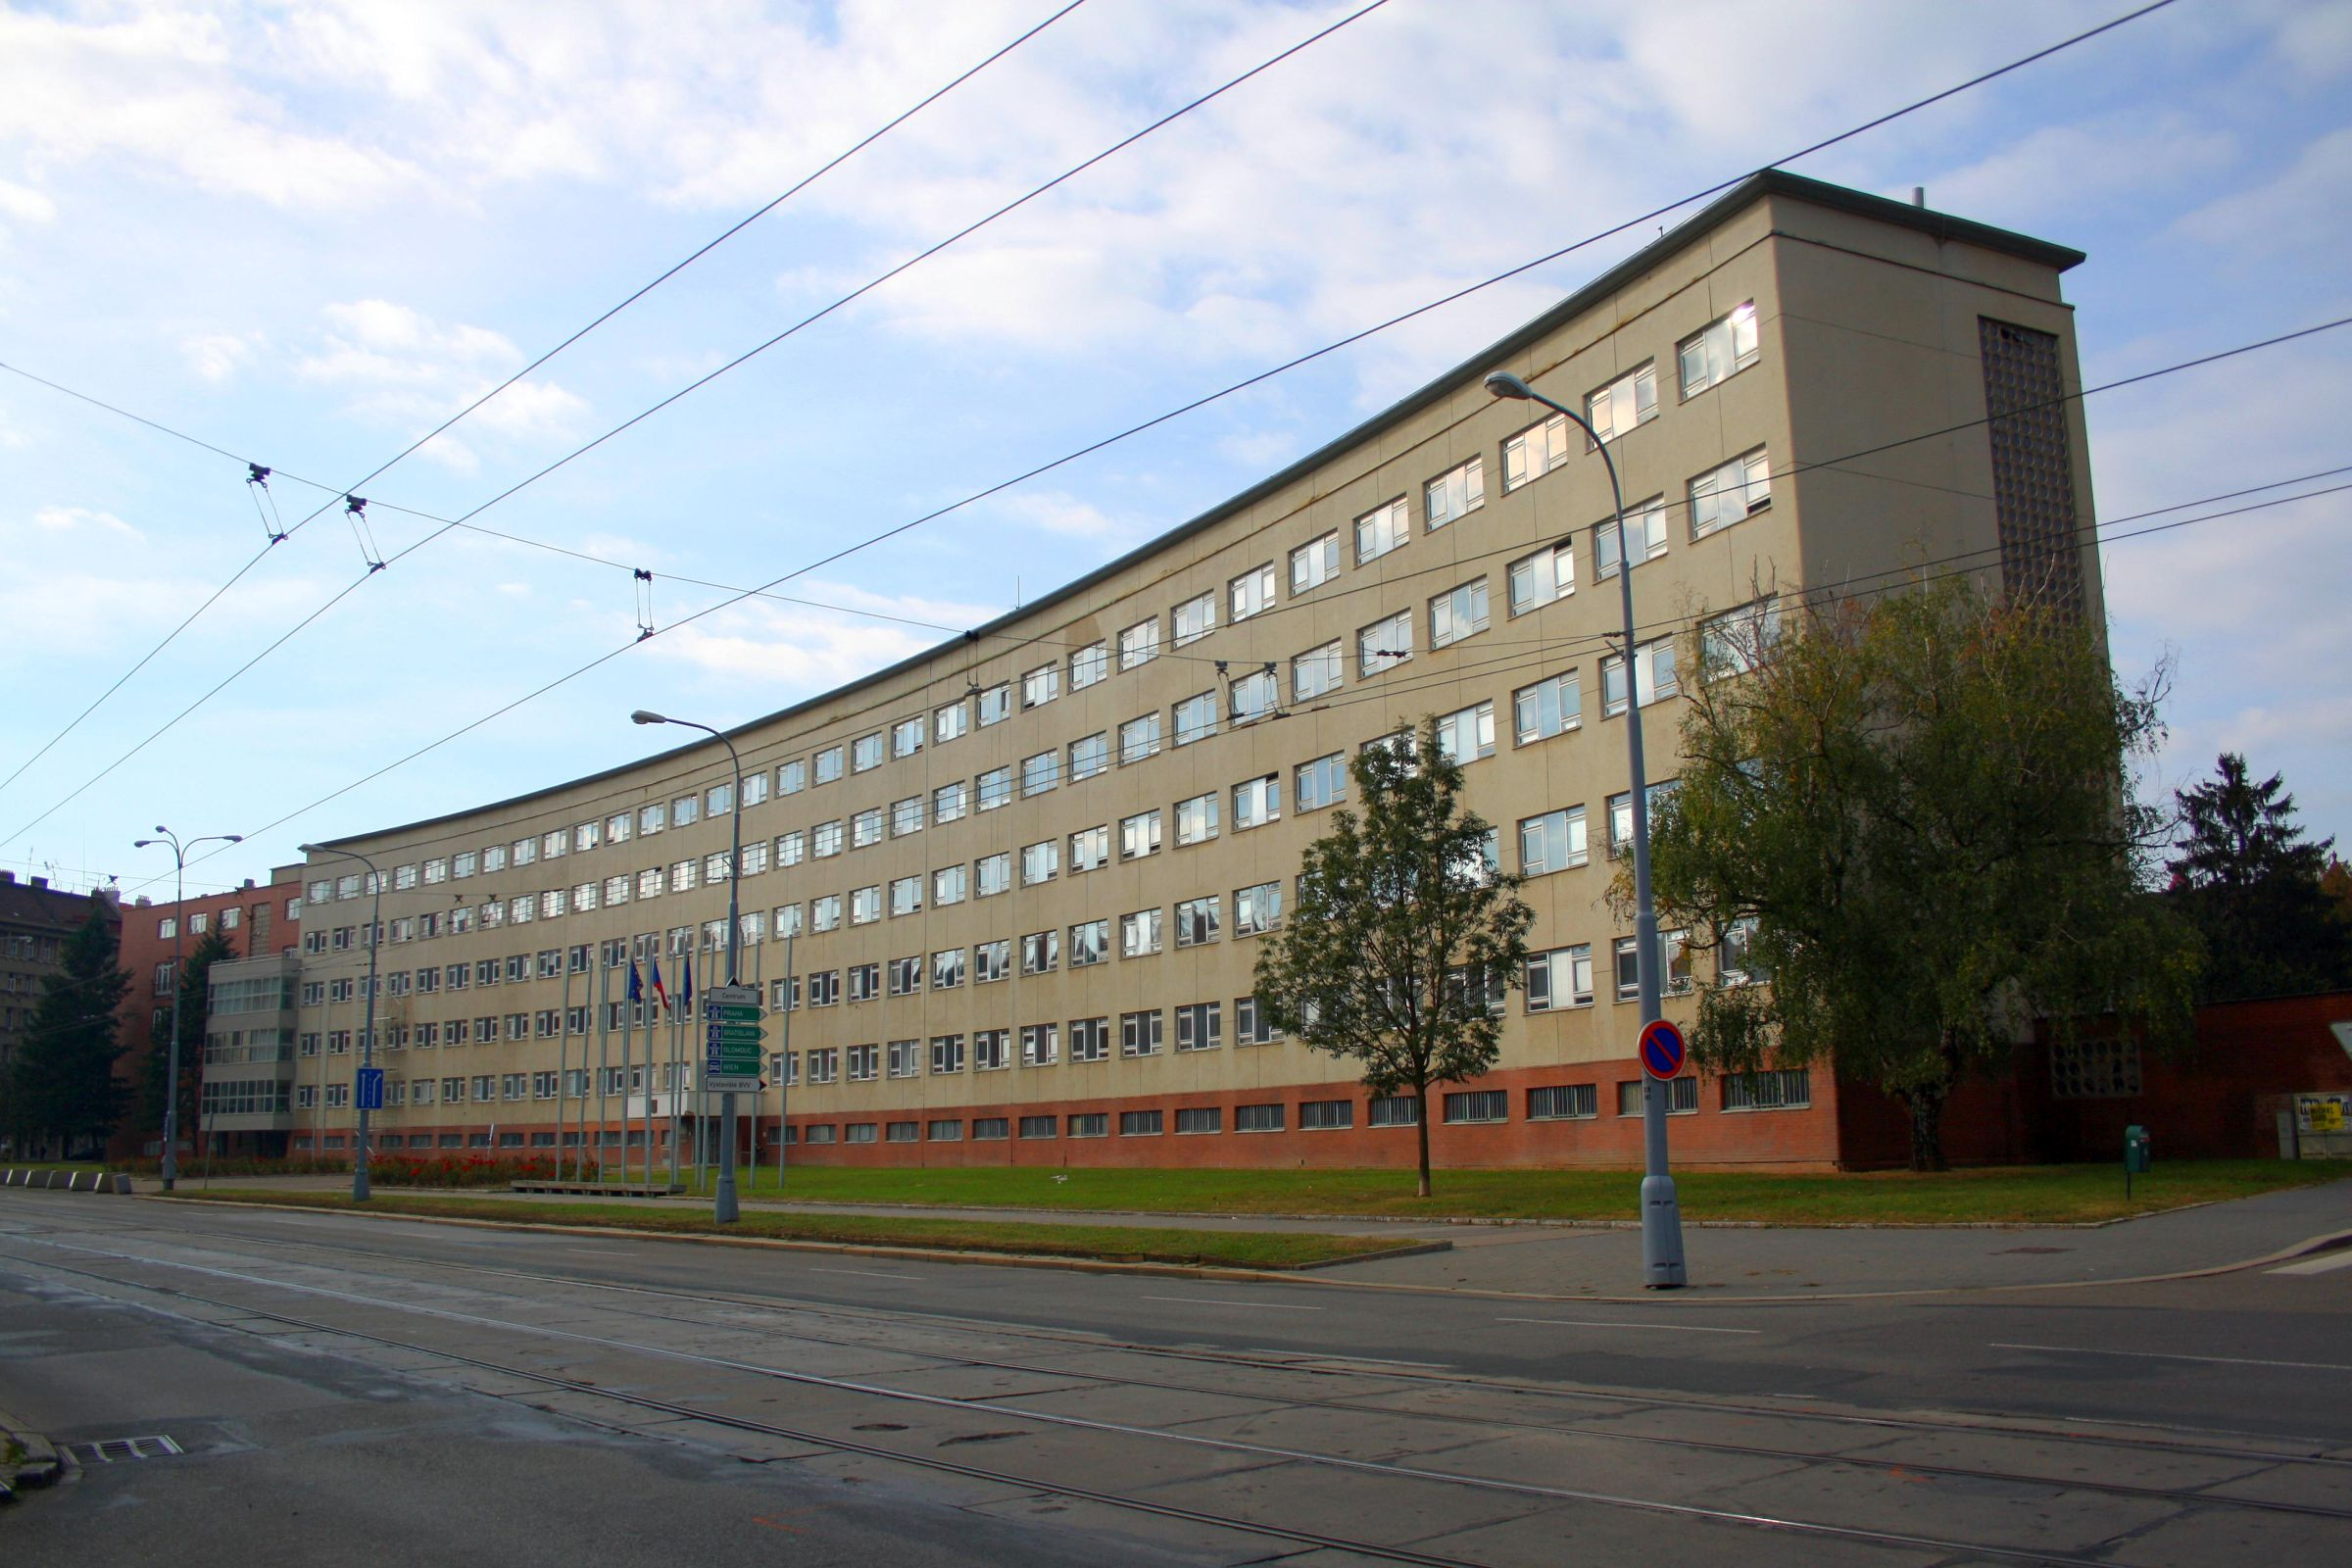 Military Academy (University of Defence)in Brno